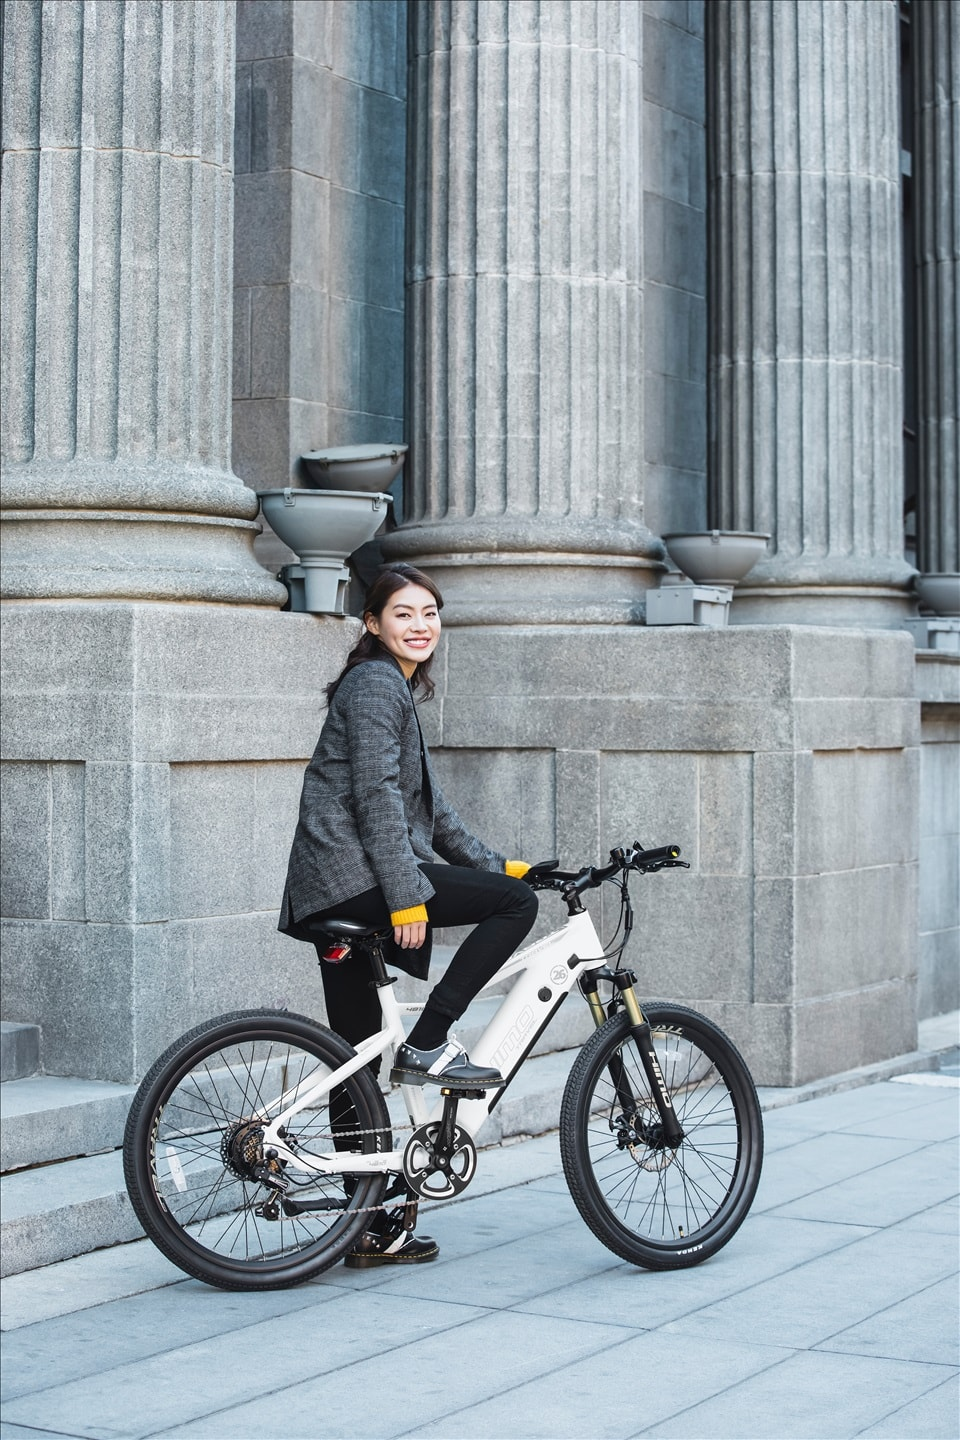 Himo C26 – Himo launches a new, powerful Electric Bike in Australia